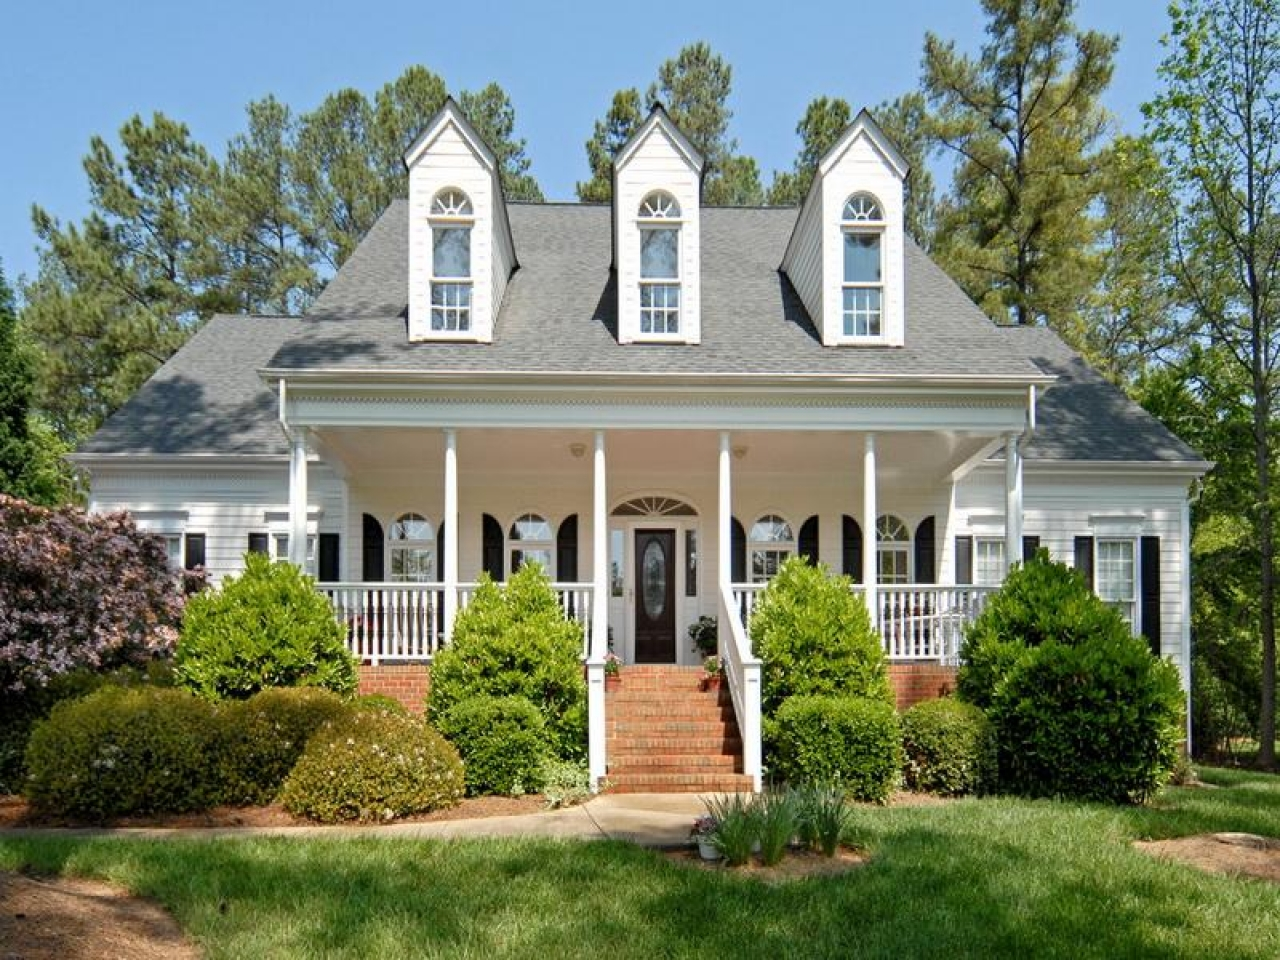 Southern colonial style house plans tudor style house Southern colonial style house plans